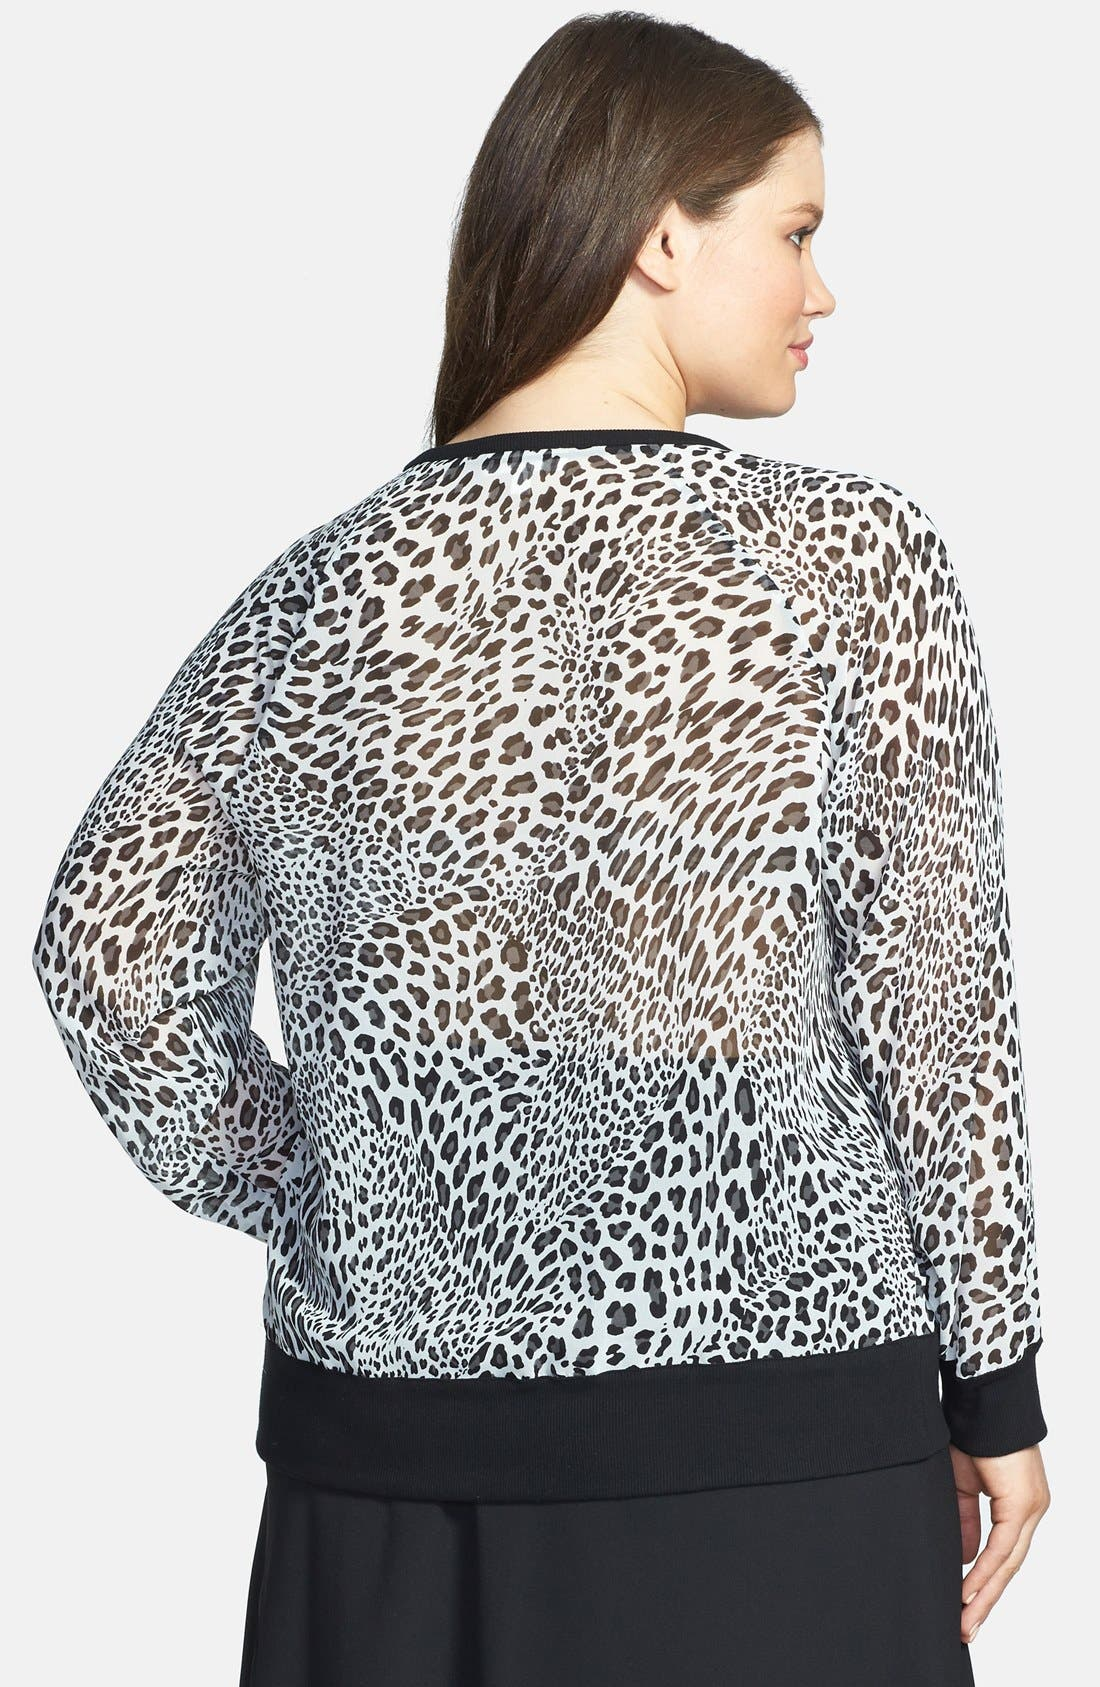 Alternate Image 2  - Two by Vince Camuto 'Leopard Stream' Batwing Sleeve Top (Plus Size)